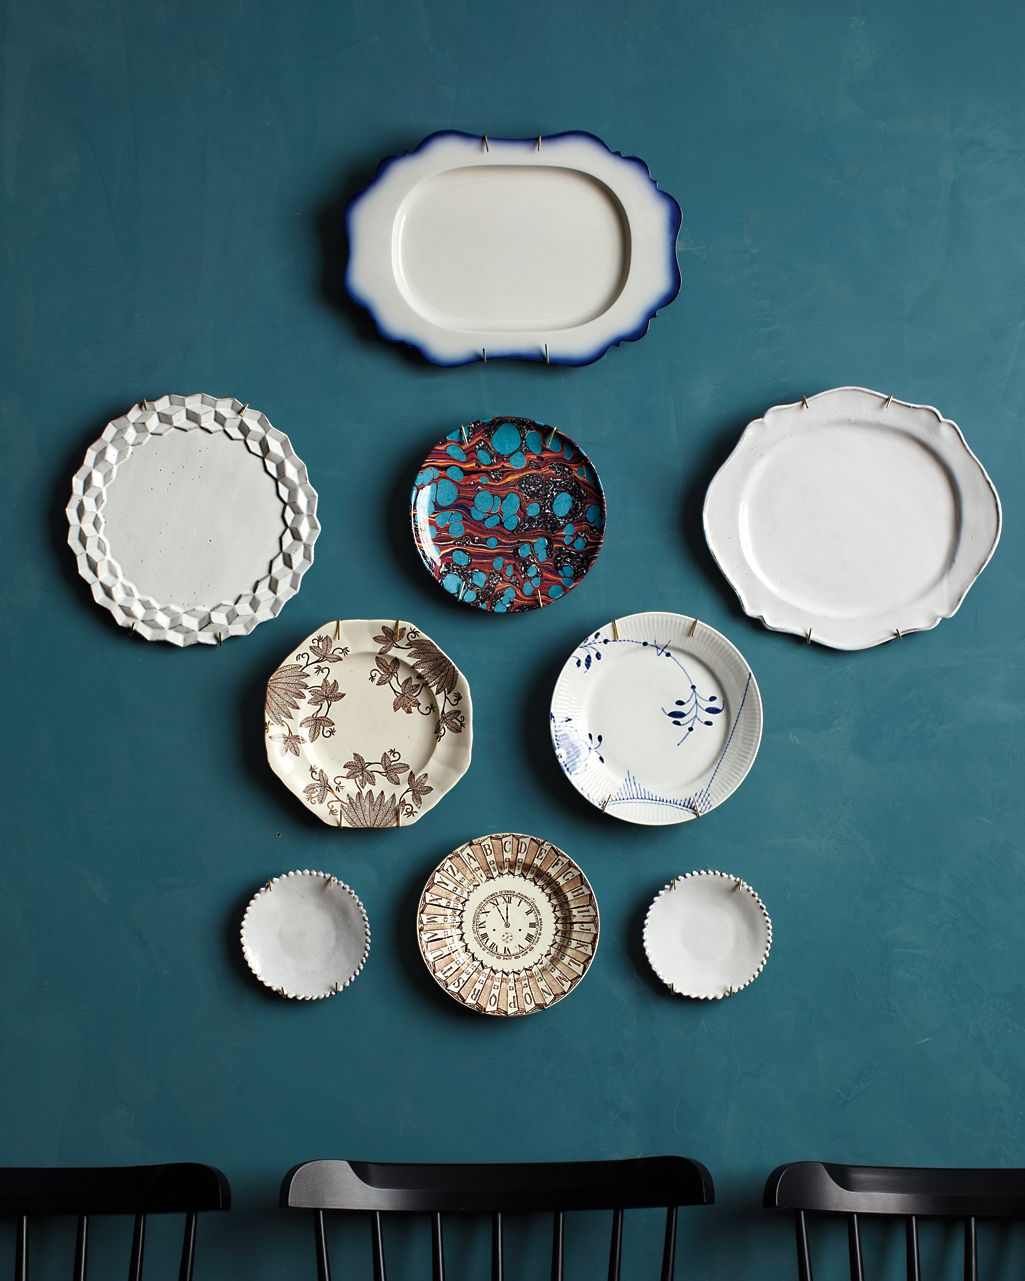 12 Brilliant Ways To Decorate A Blank Wall Plates On Wall Modern Plates Mirrored Projects Decorative wall plate set